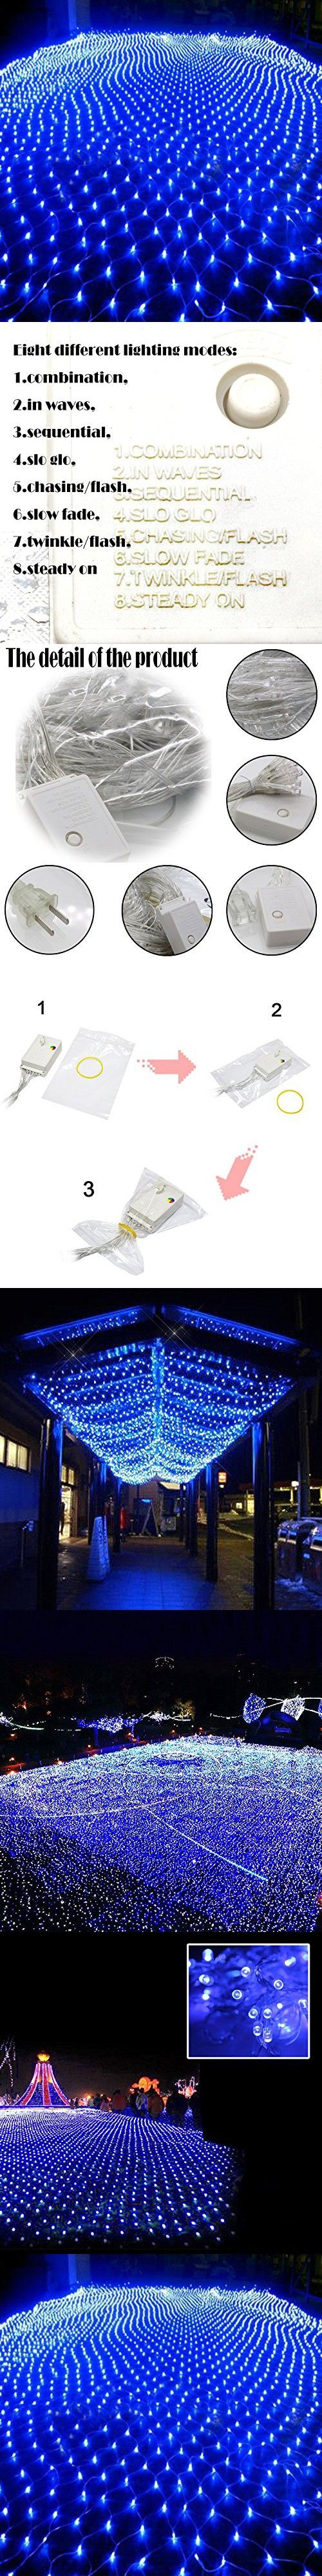 Bestface 3m x 2m 210 LED Clear Net Lights Fairy Lights Outdoor Party Christmas Xmas Wedding Home Garden Decorations 8 Modes for Flashing (Blue)